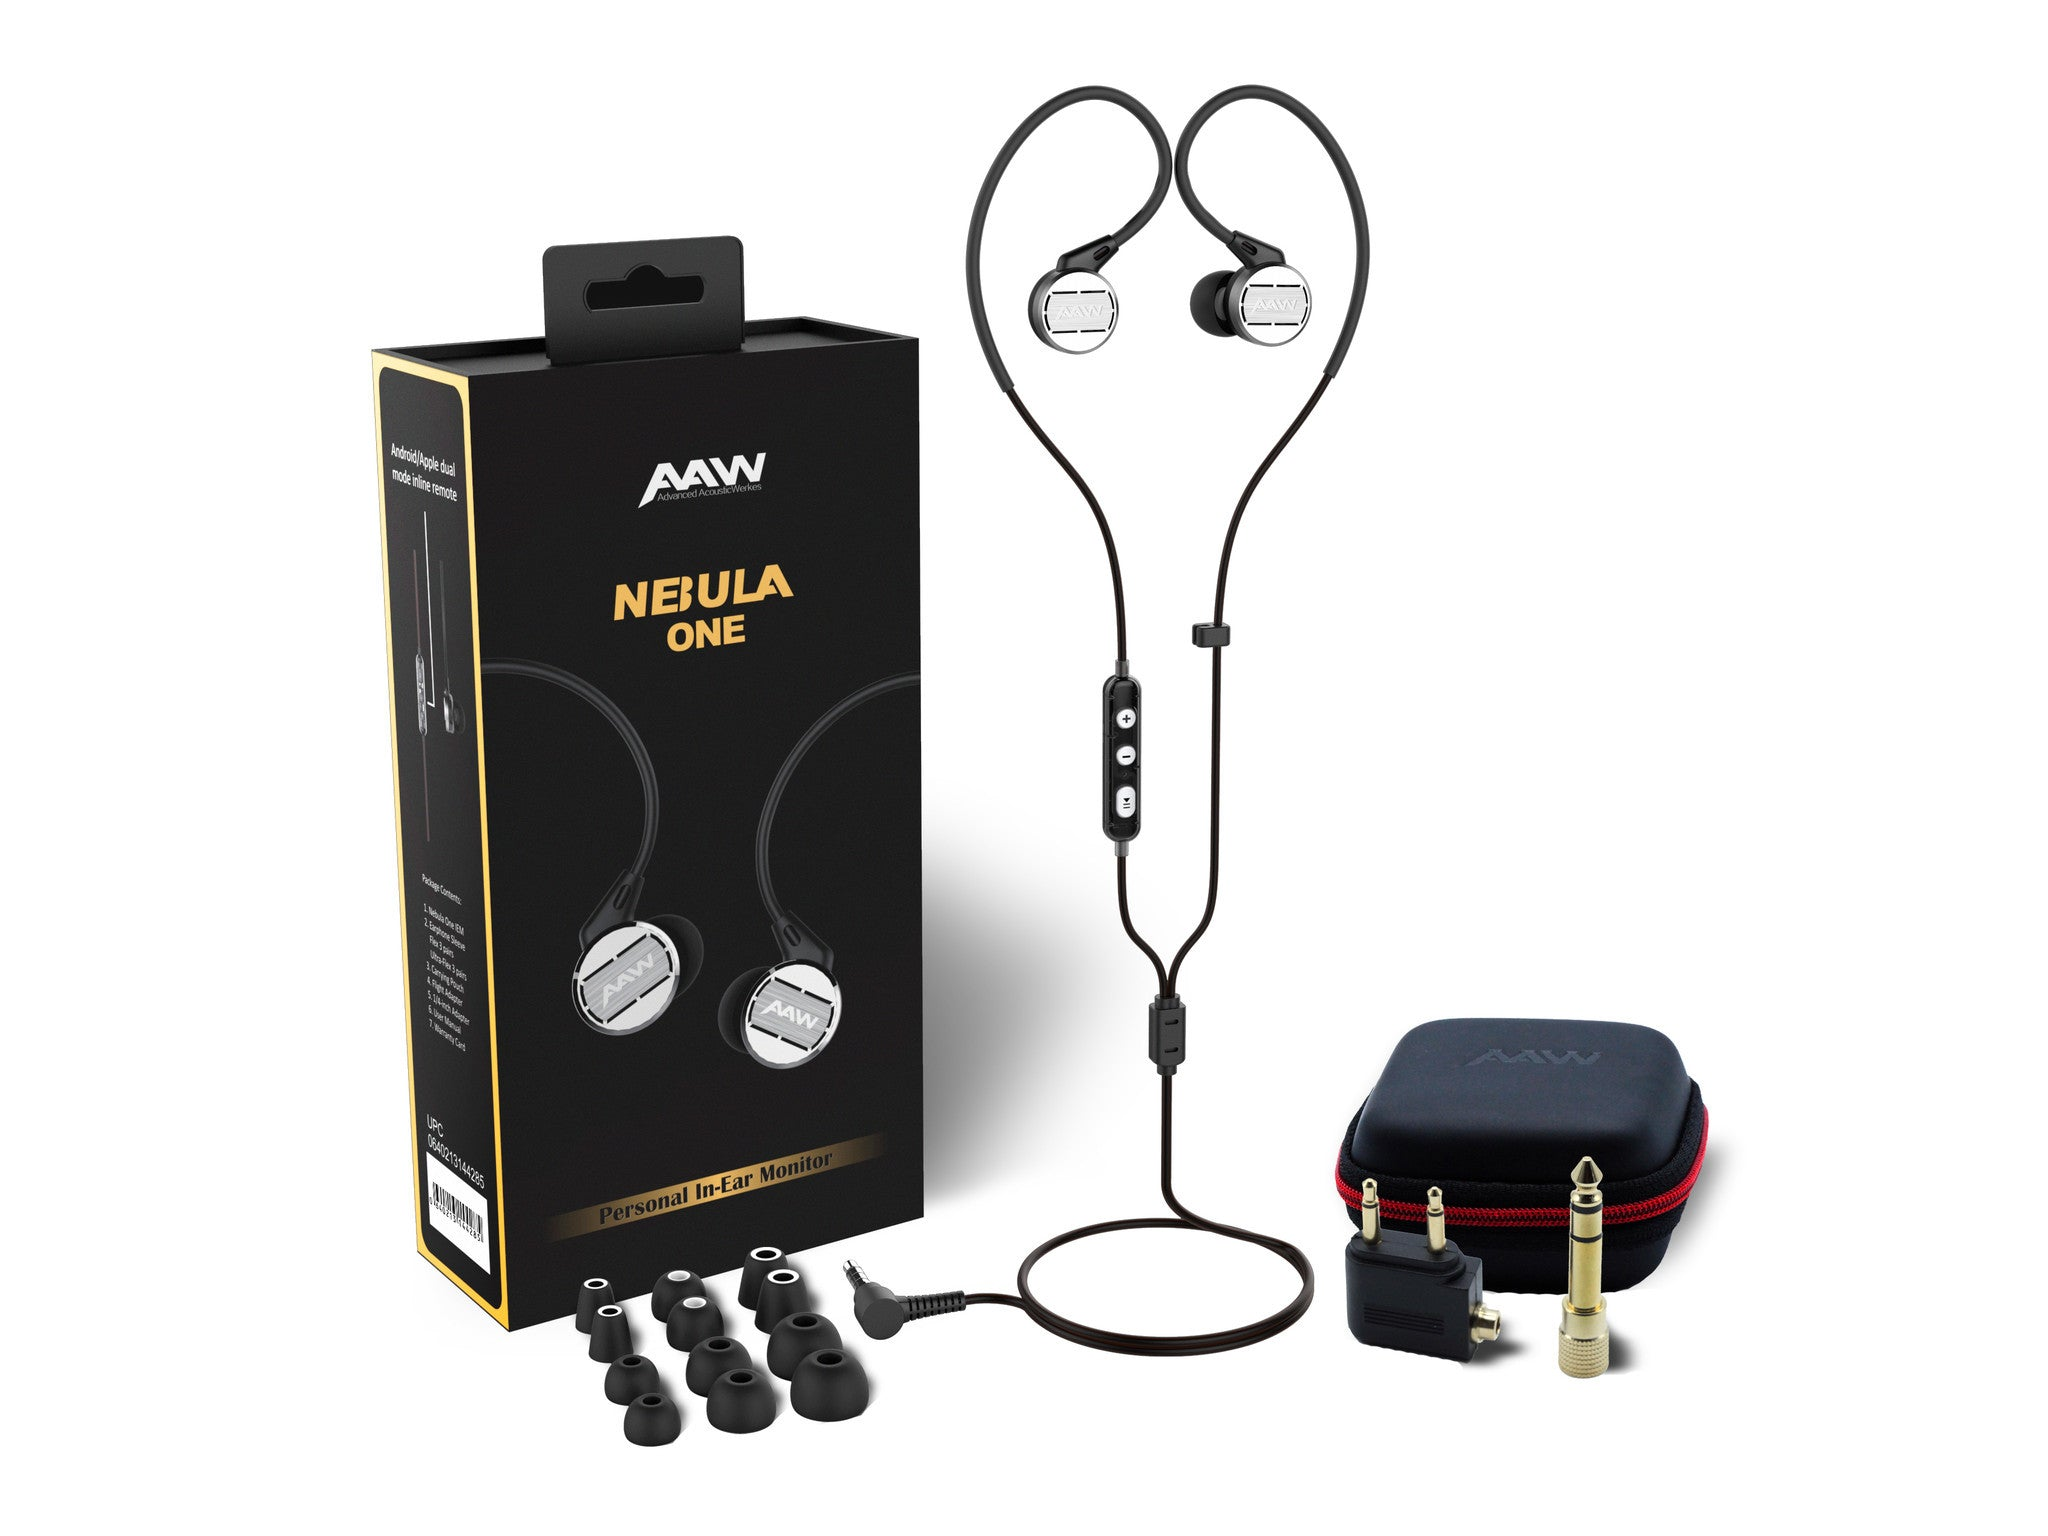 AAW Nebula One Universal In-Ear Monitor